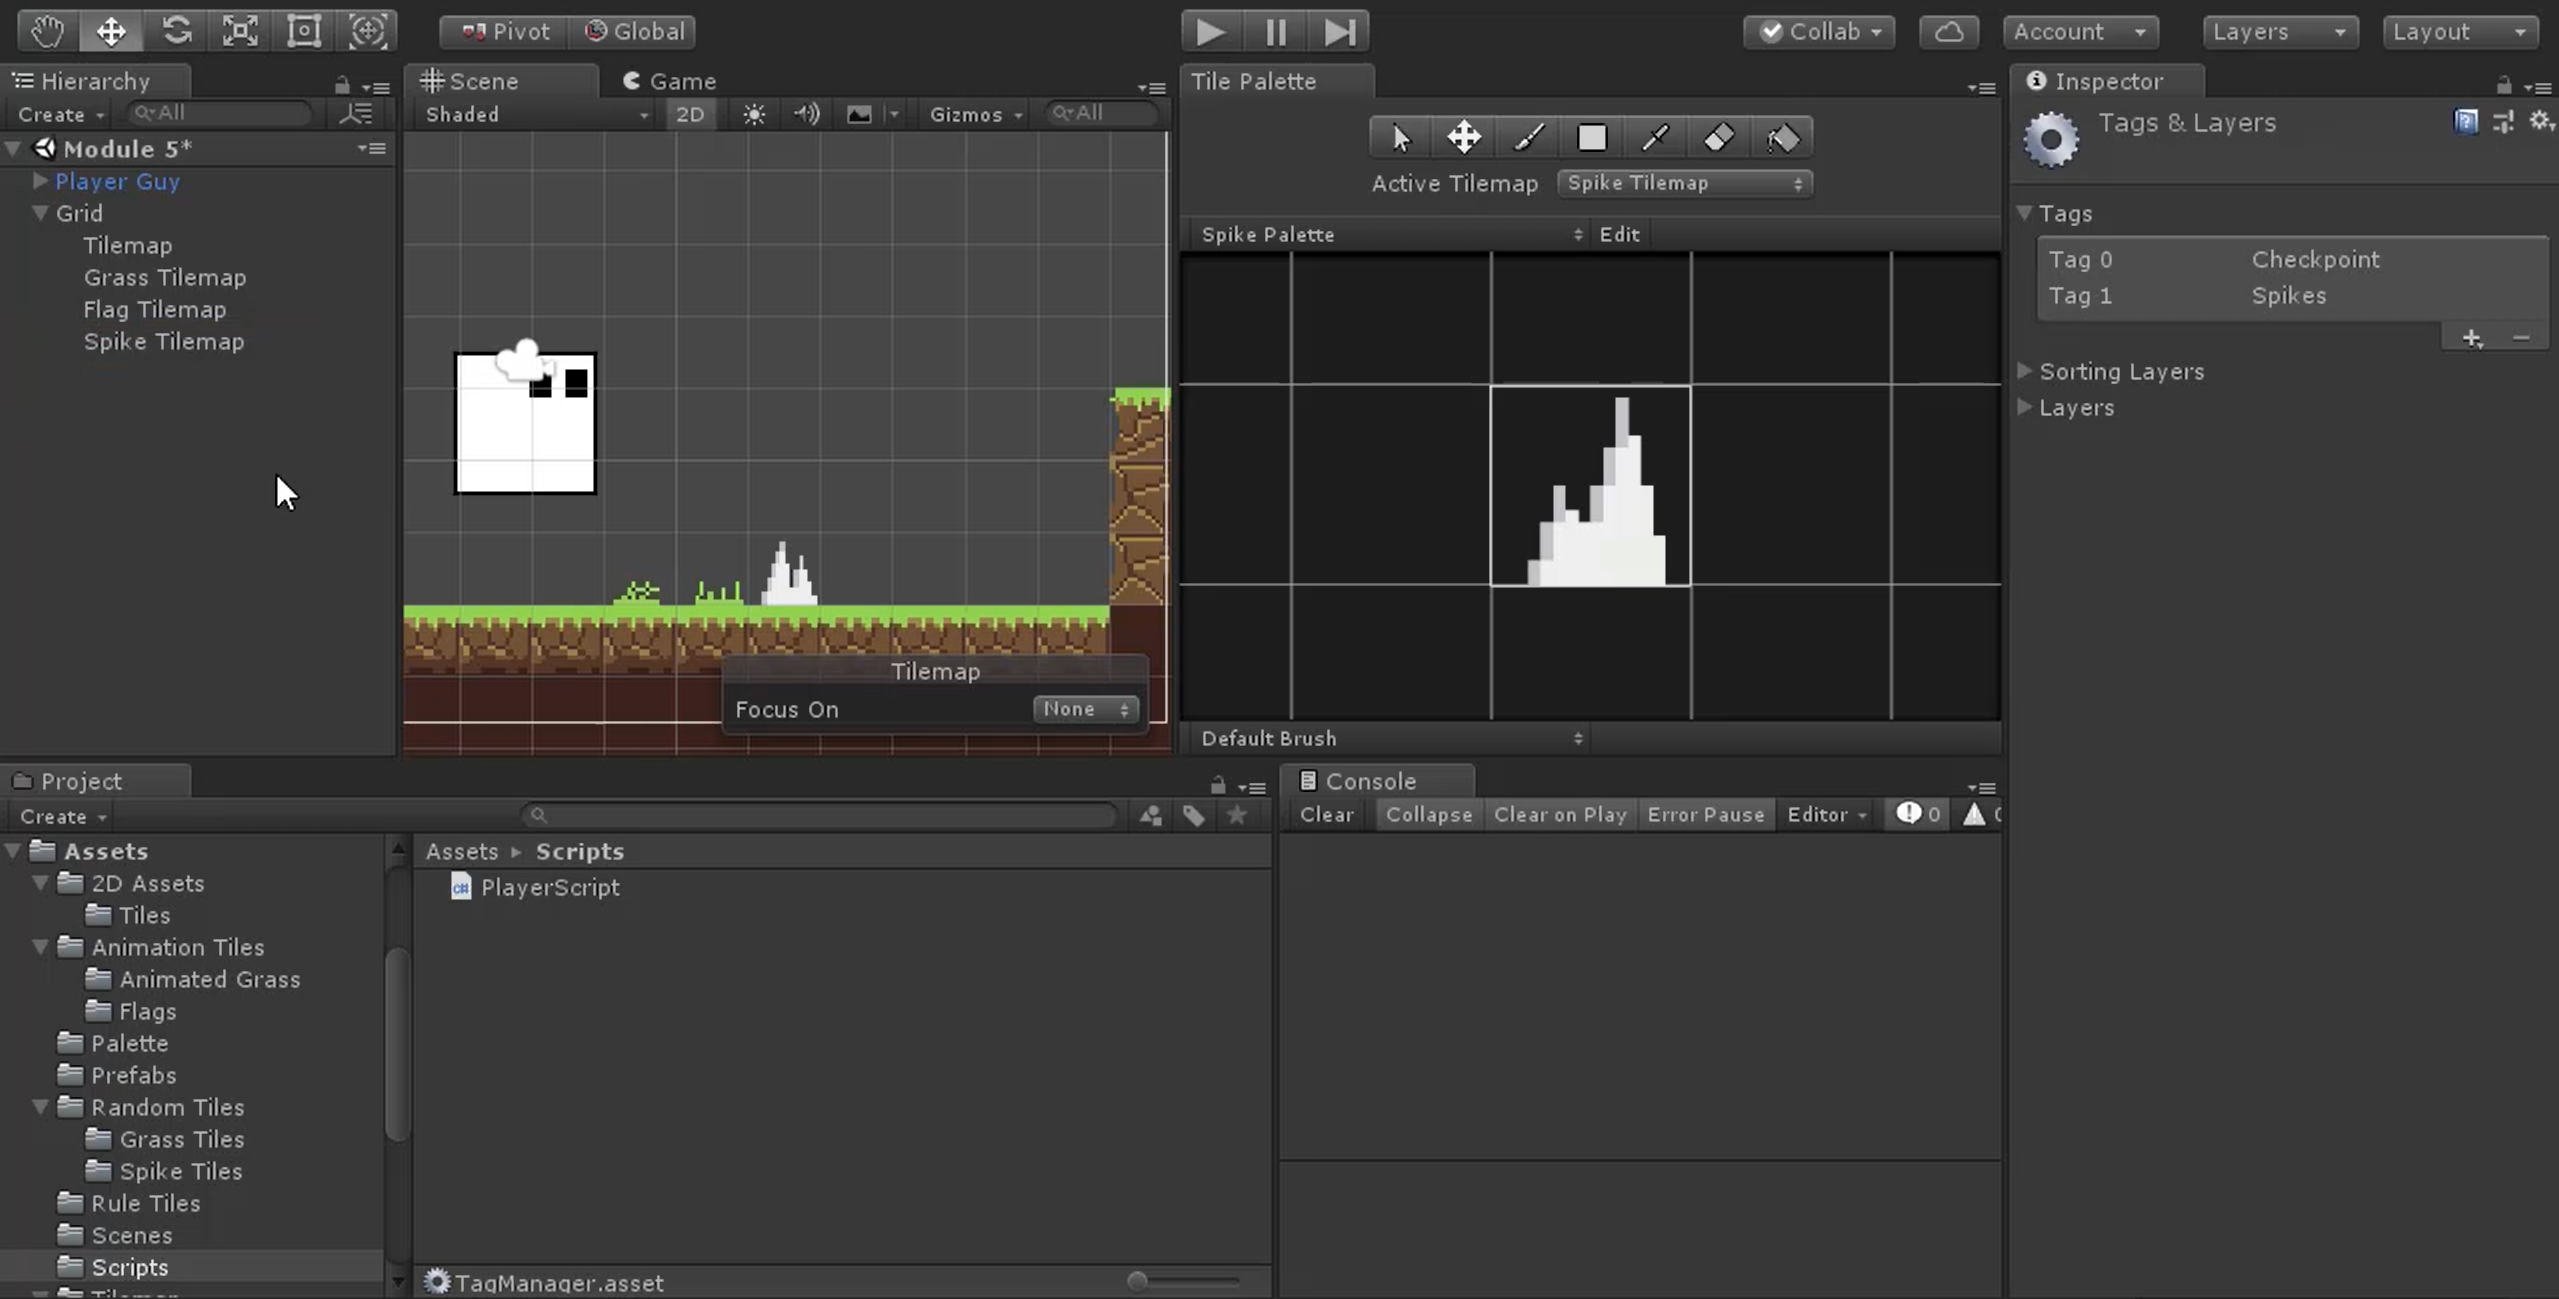 Getting Started with Tilemap in Unity | Pluralsight